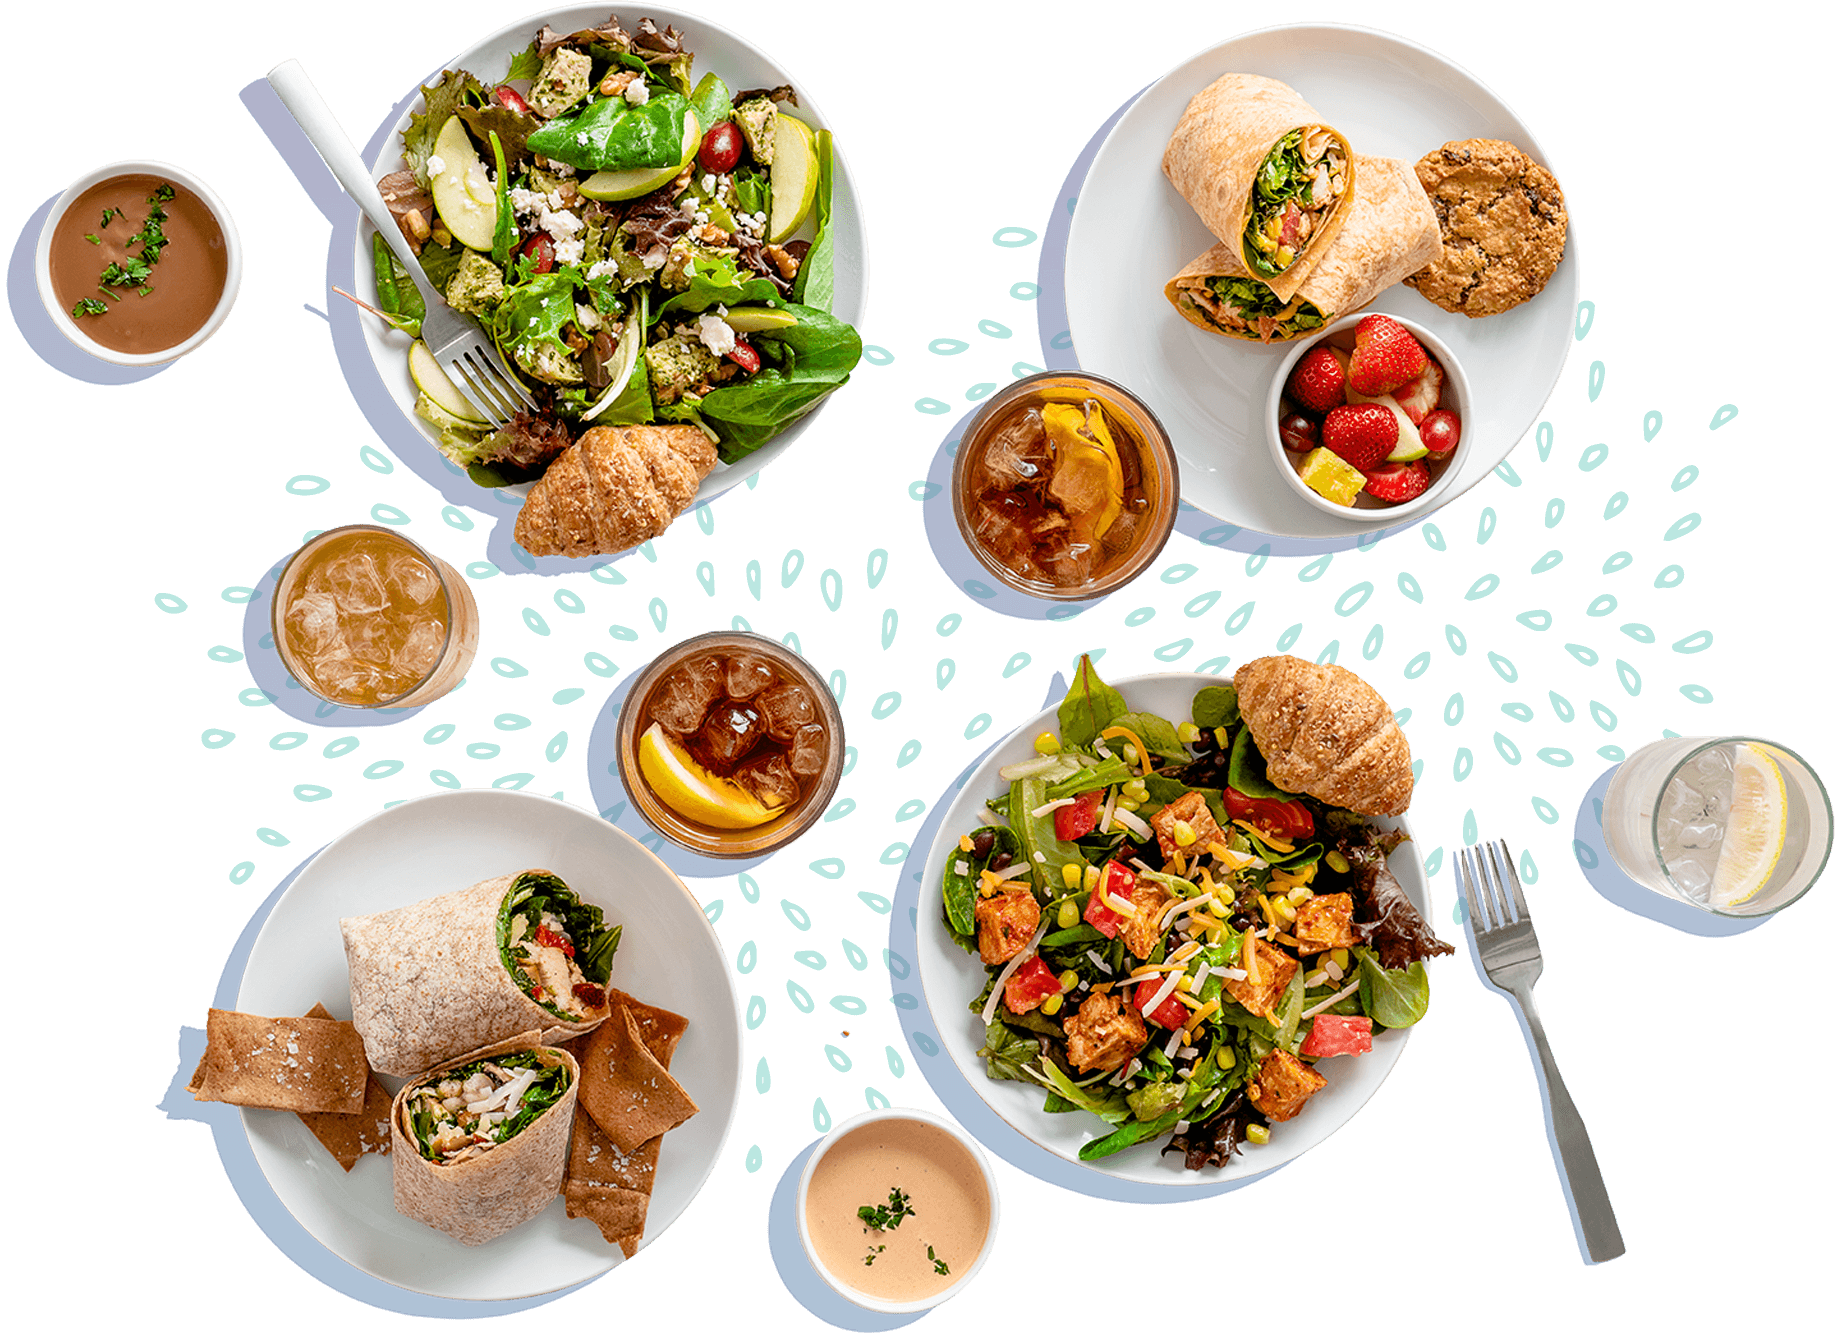 layout of salad dressings, salads in bowls, wraps on a plate, and drinks